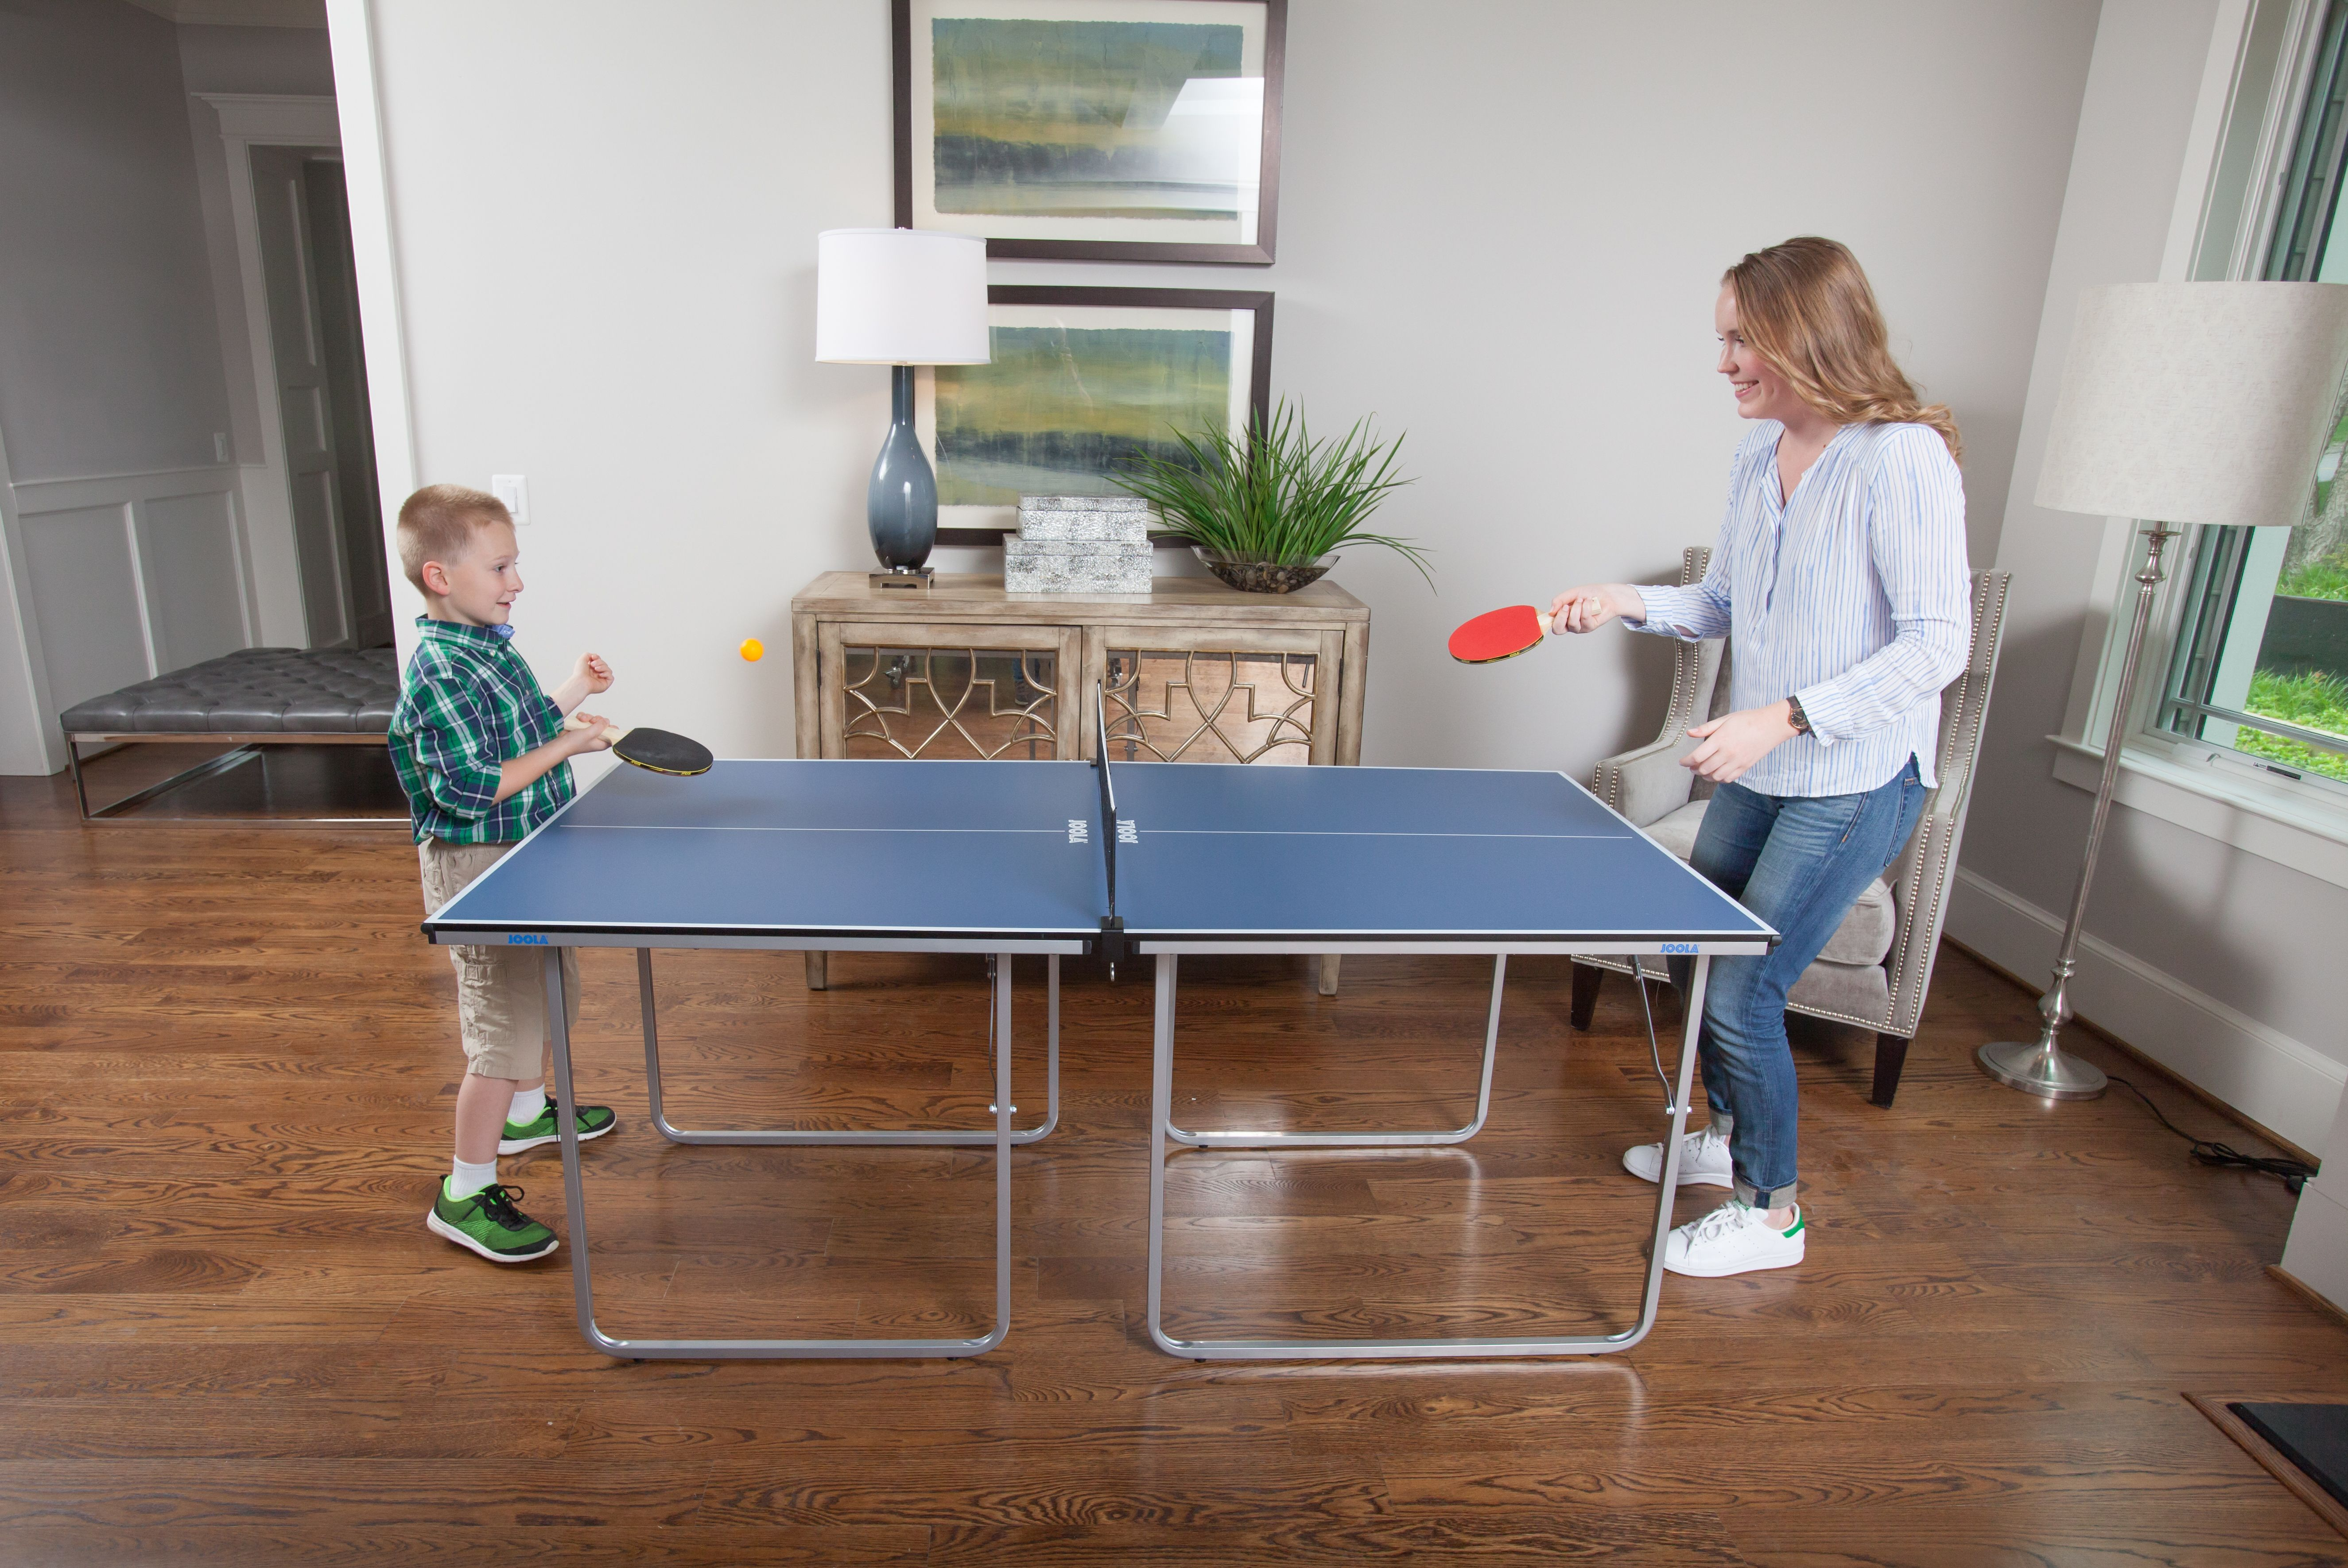 At 2 3 The Size Of A Regulation Table The Joola Midsize Table